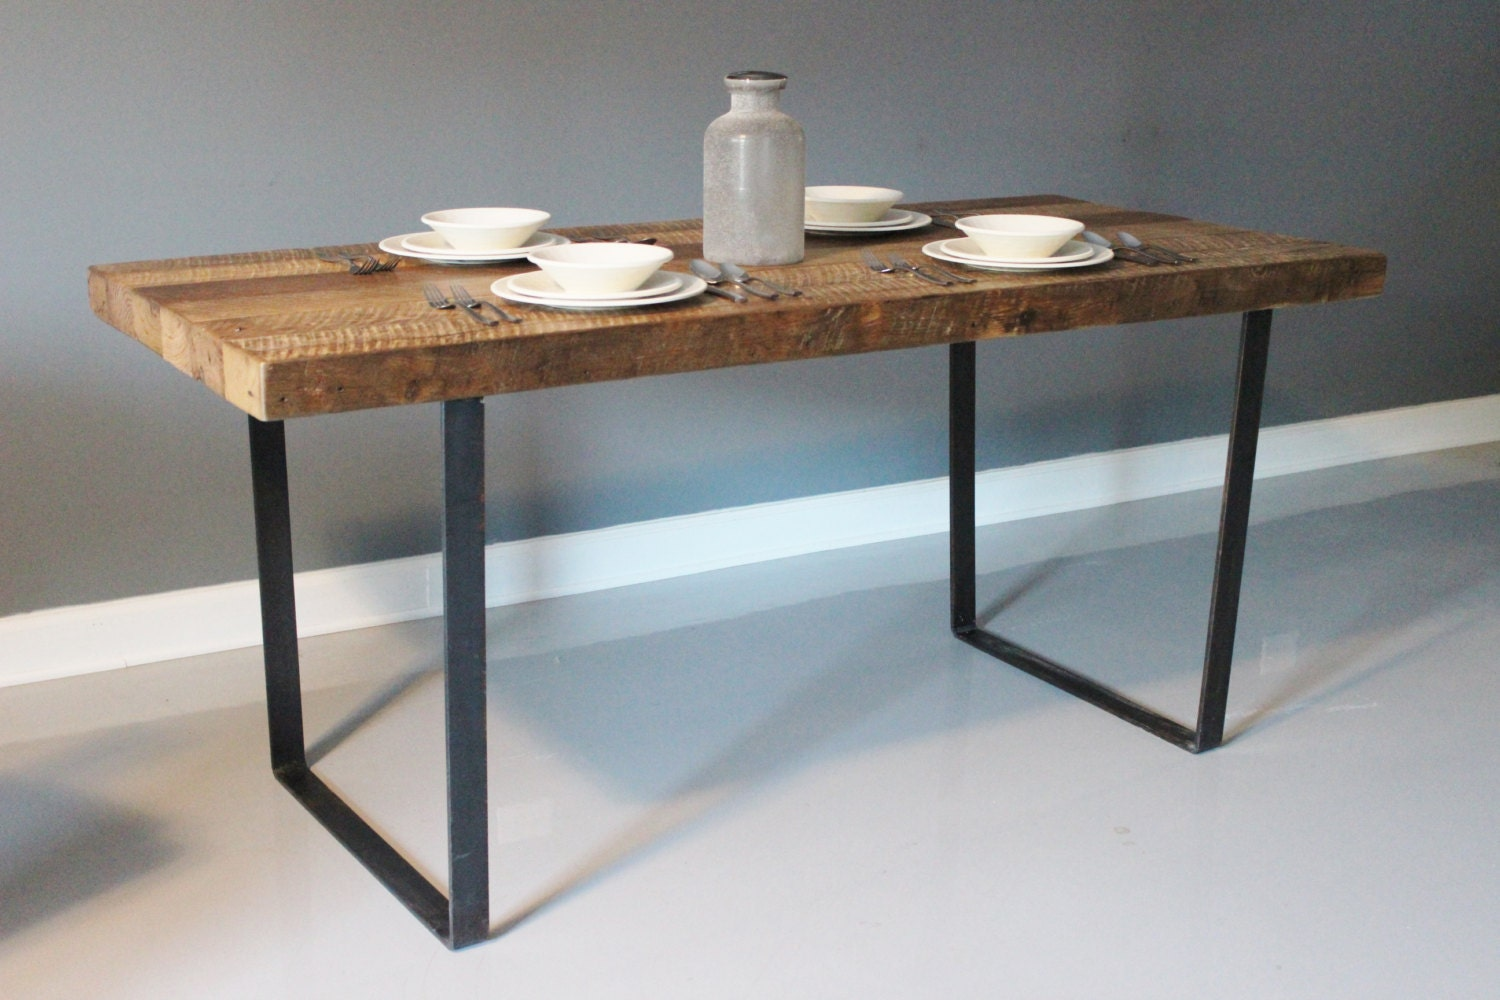 Superb img of Wood Plank Dining Table Reclaimed Wood Furniture by DendroCo with #654834 color and 1500x1000 pixels